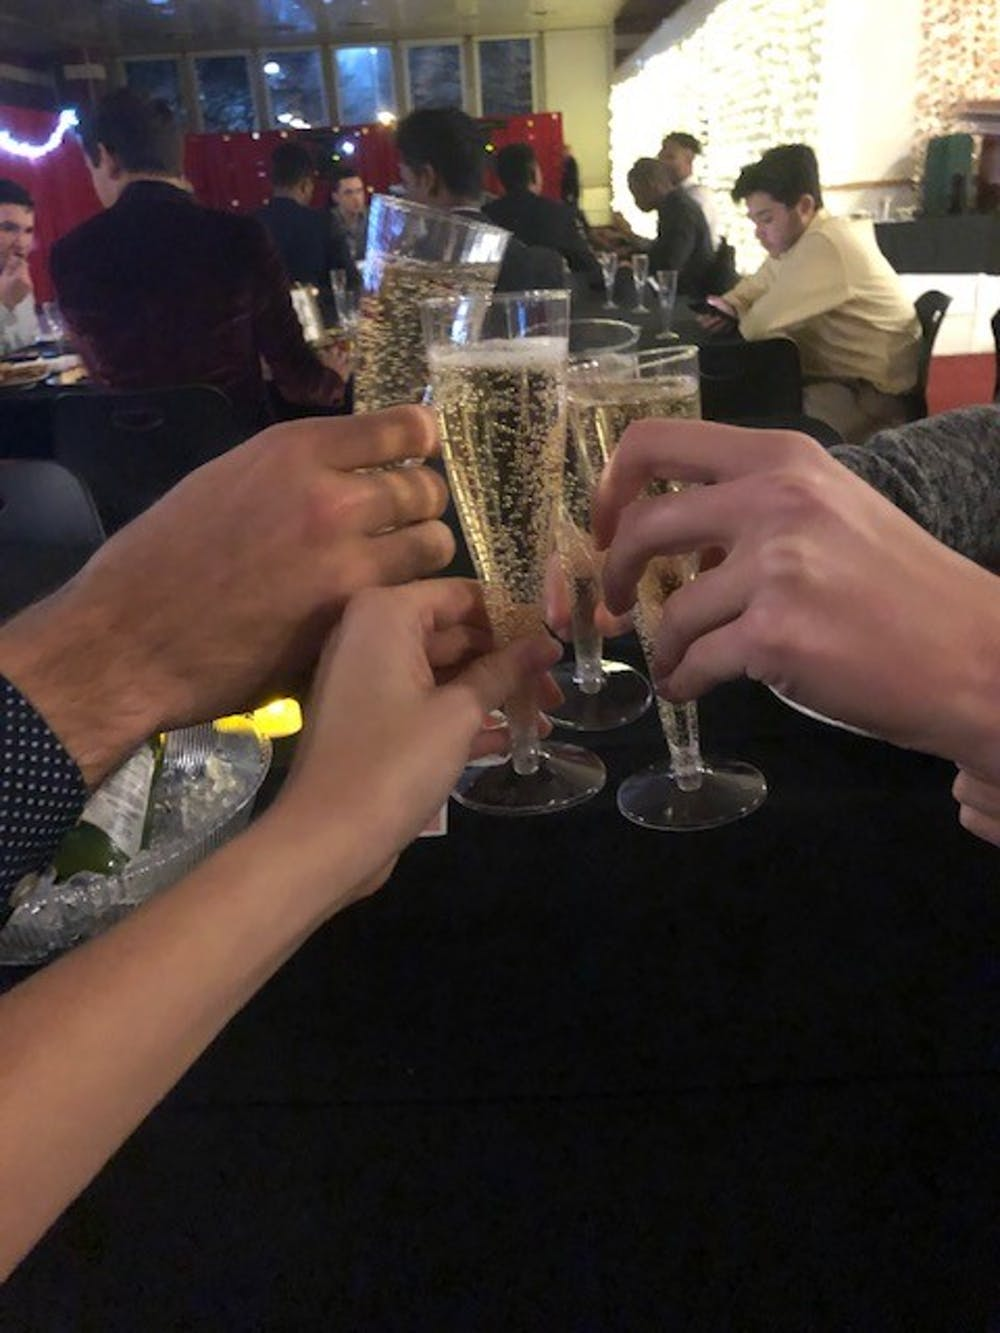 <p>McNutt Quad residents attend the Holly and Ivy dinner dance Dec. 6, 2018 . The dance was certified as a Green Event by Sustain IU for making environmentally friendly decisions like using reusable dinner ware and decorations.</p>